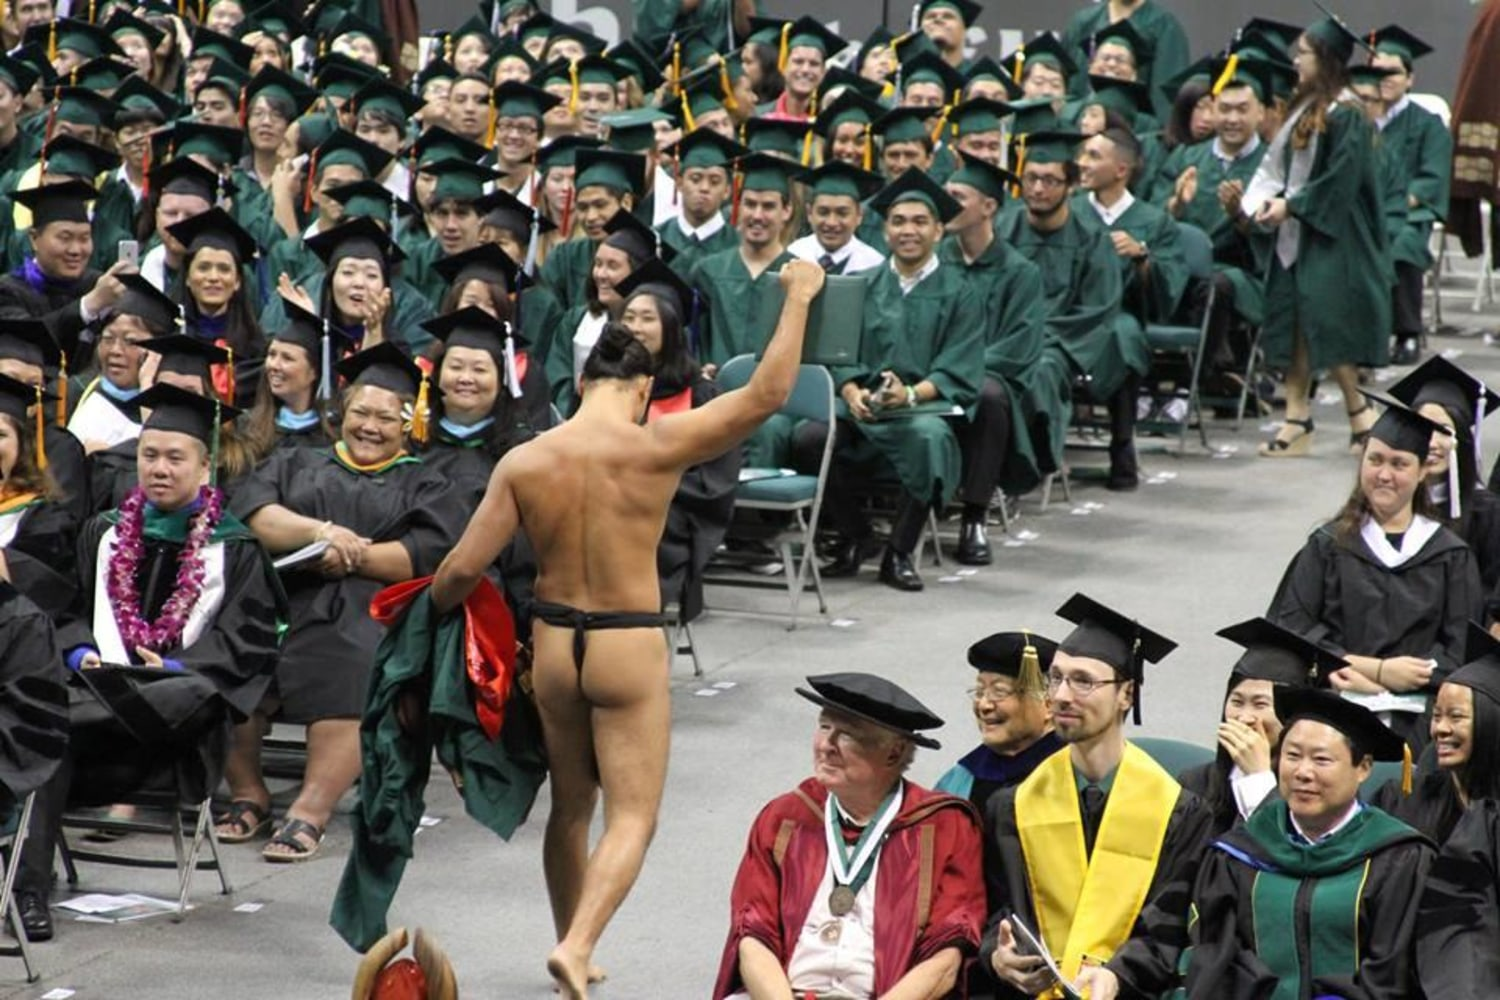 UAH} Native Hawaiian Graduates Wearing Nothing but Cultural Pride ...